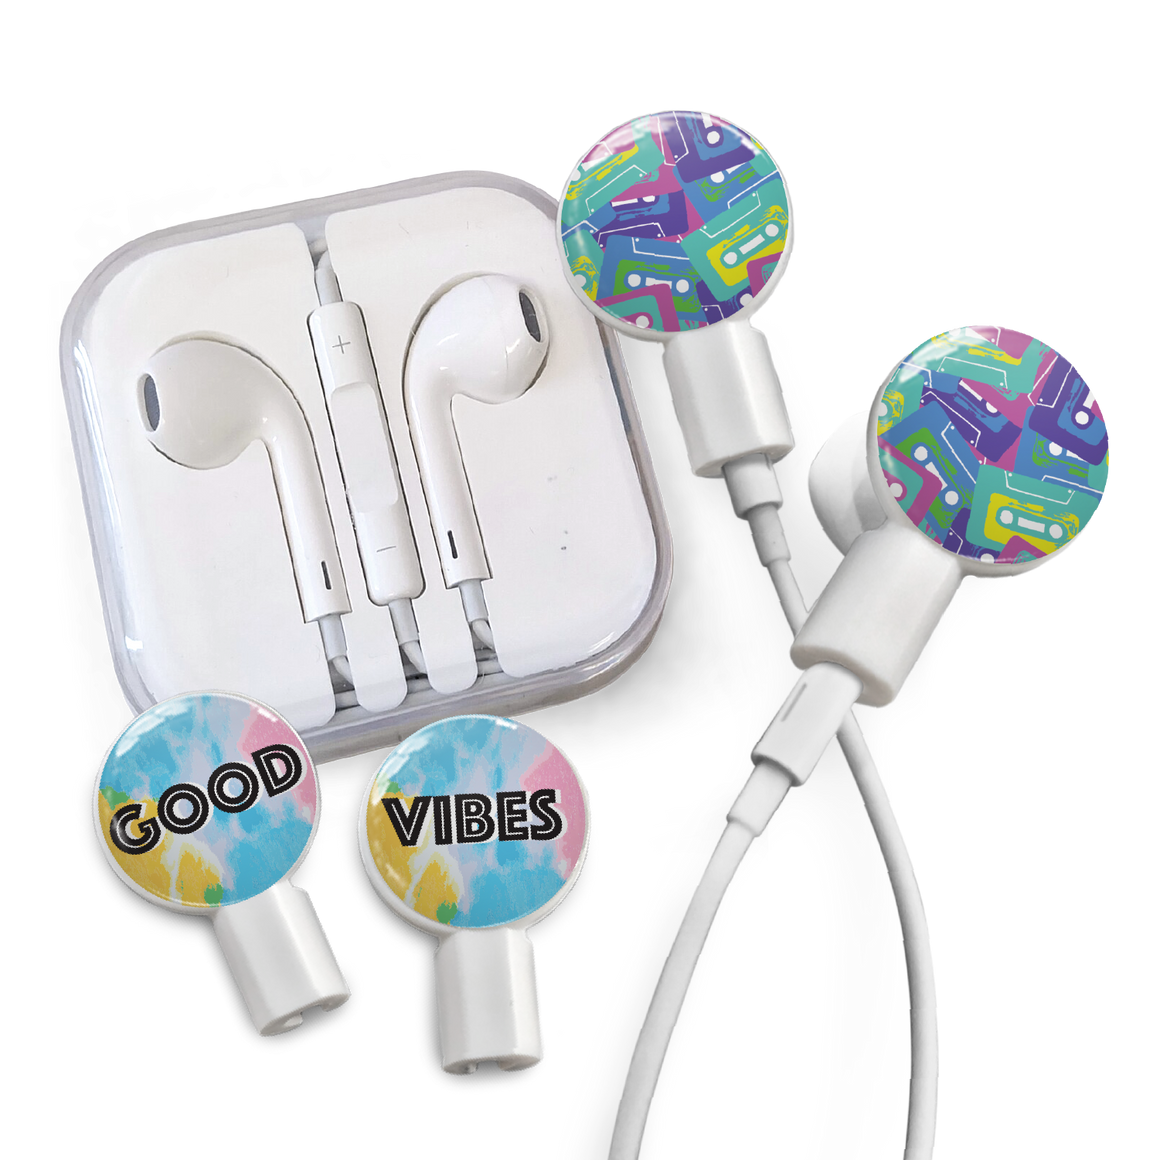 Earbuds + Combo Pack: Cassettes + Good Vibes